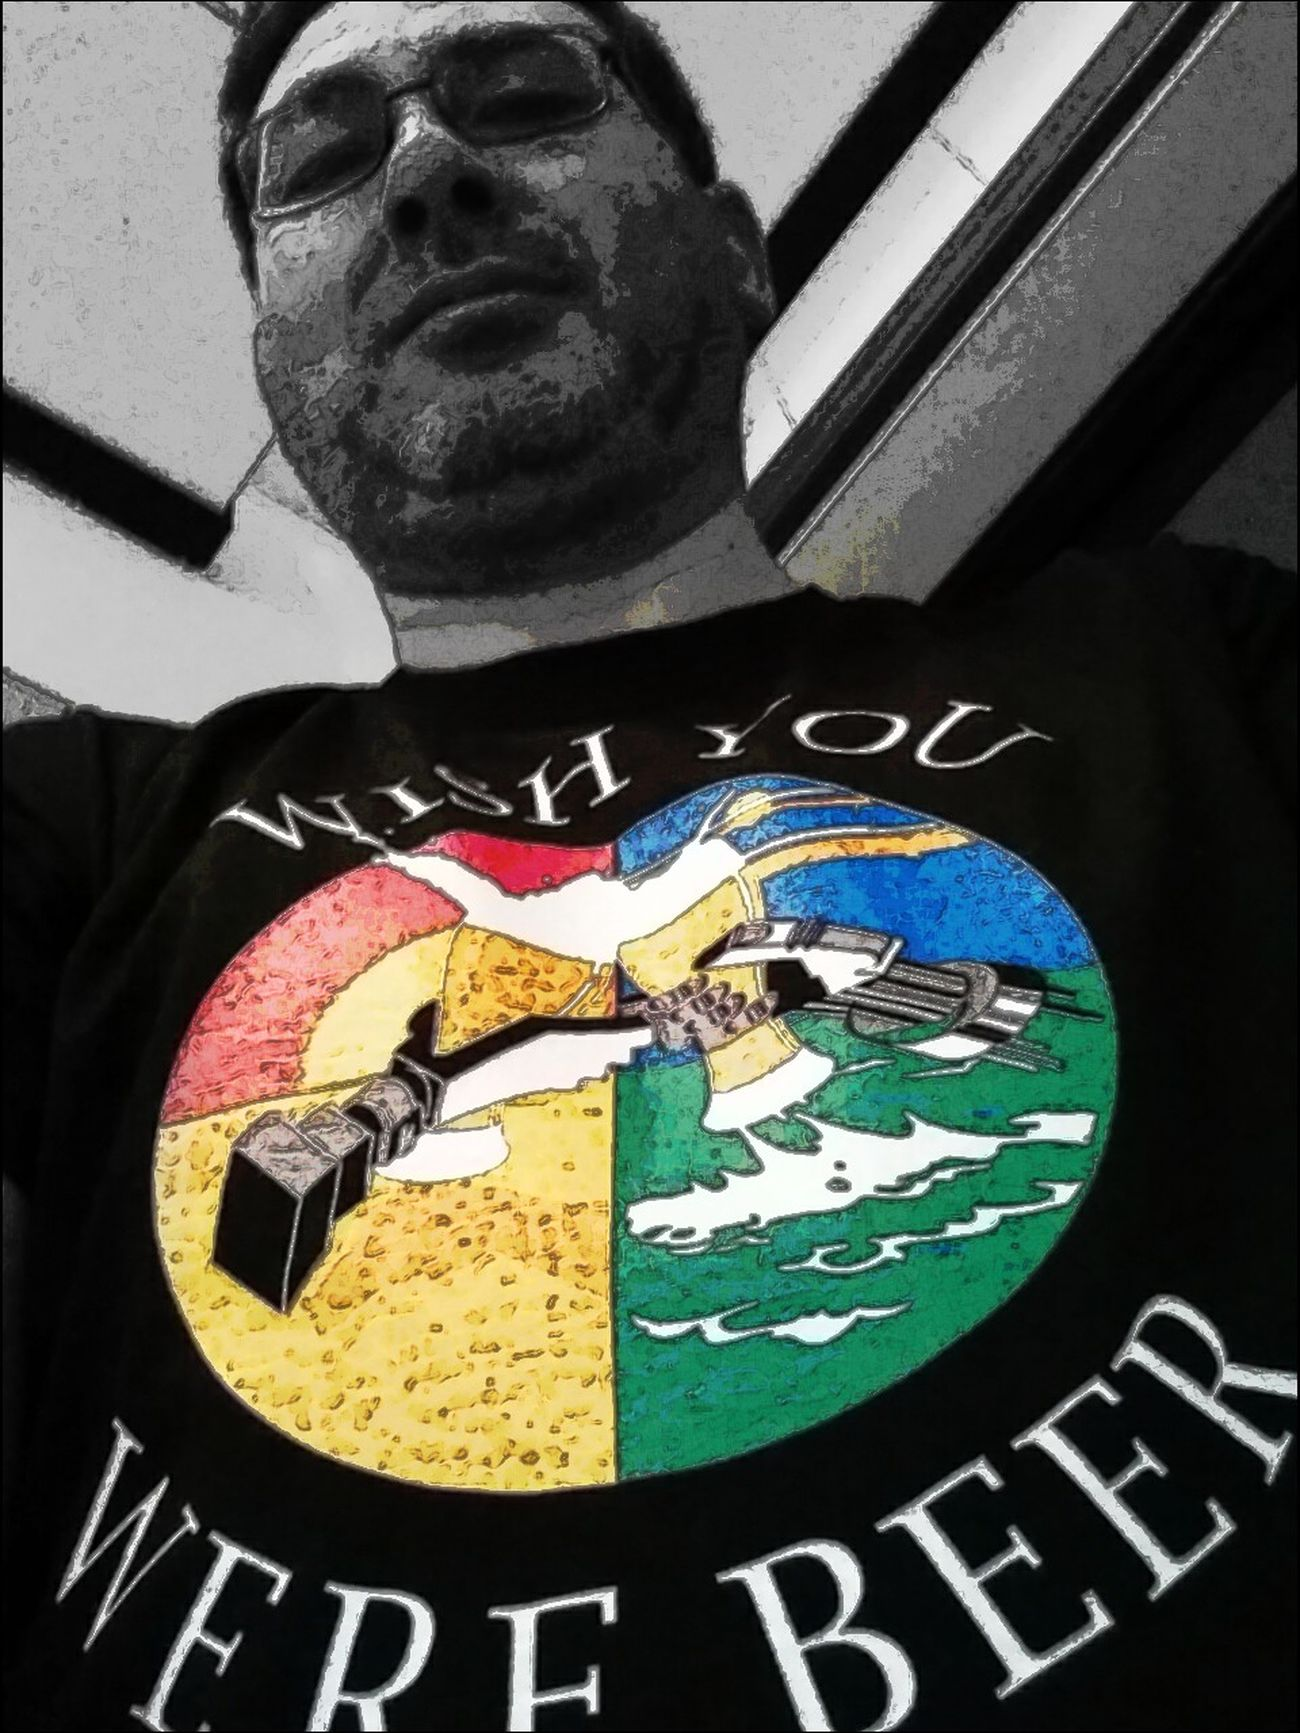 Tuesday_selfportrait_nonchallenge Colorsplash Wish You Were Beer